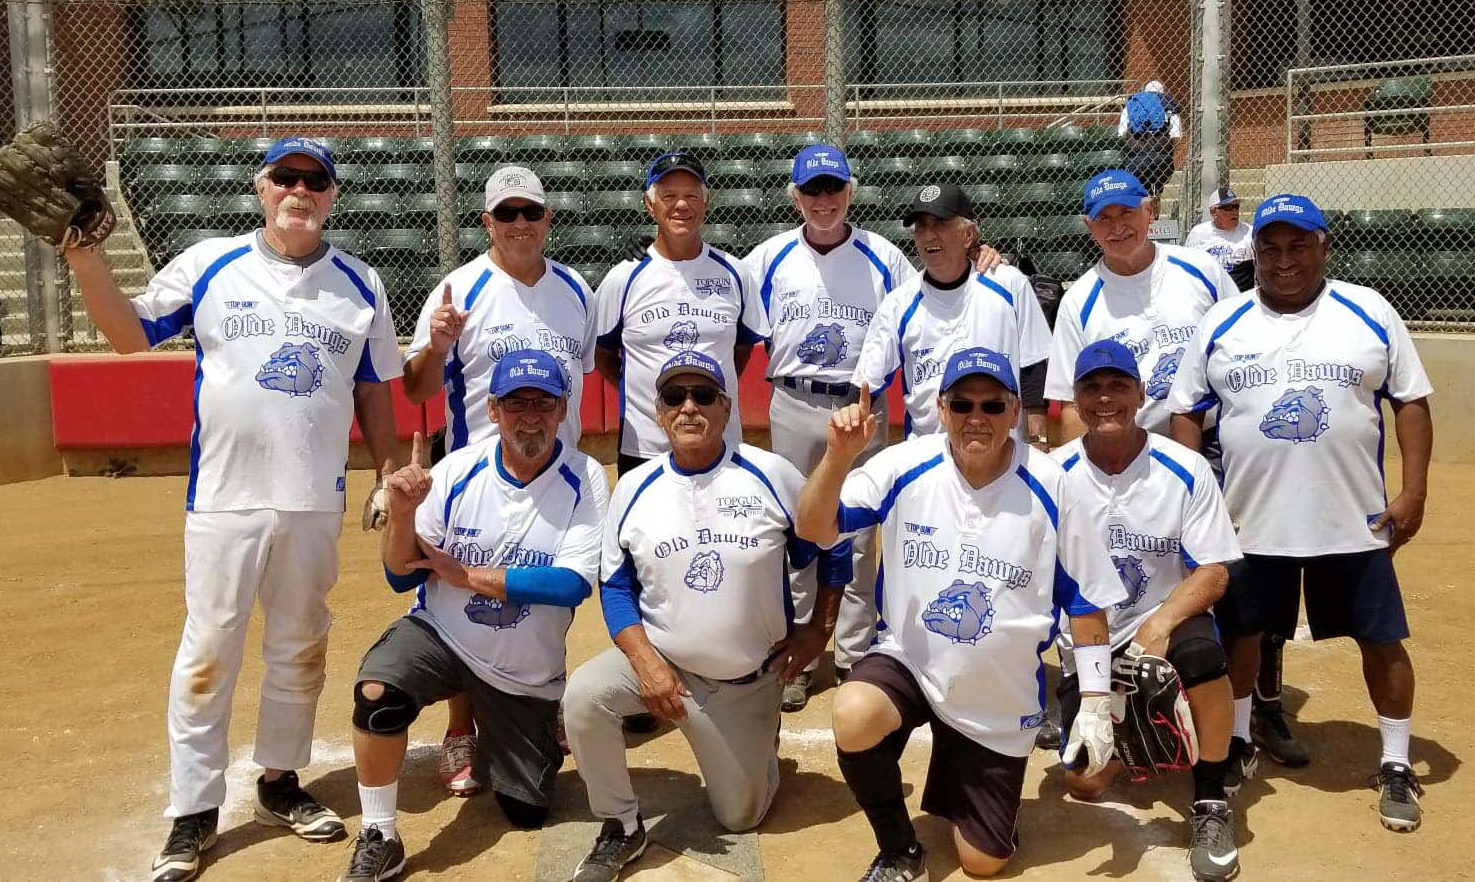 Olde Dawgs - Champions of Reno Tuneup Tournament May 2019.jpg